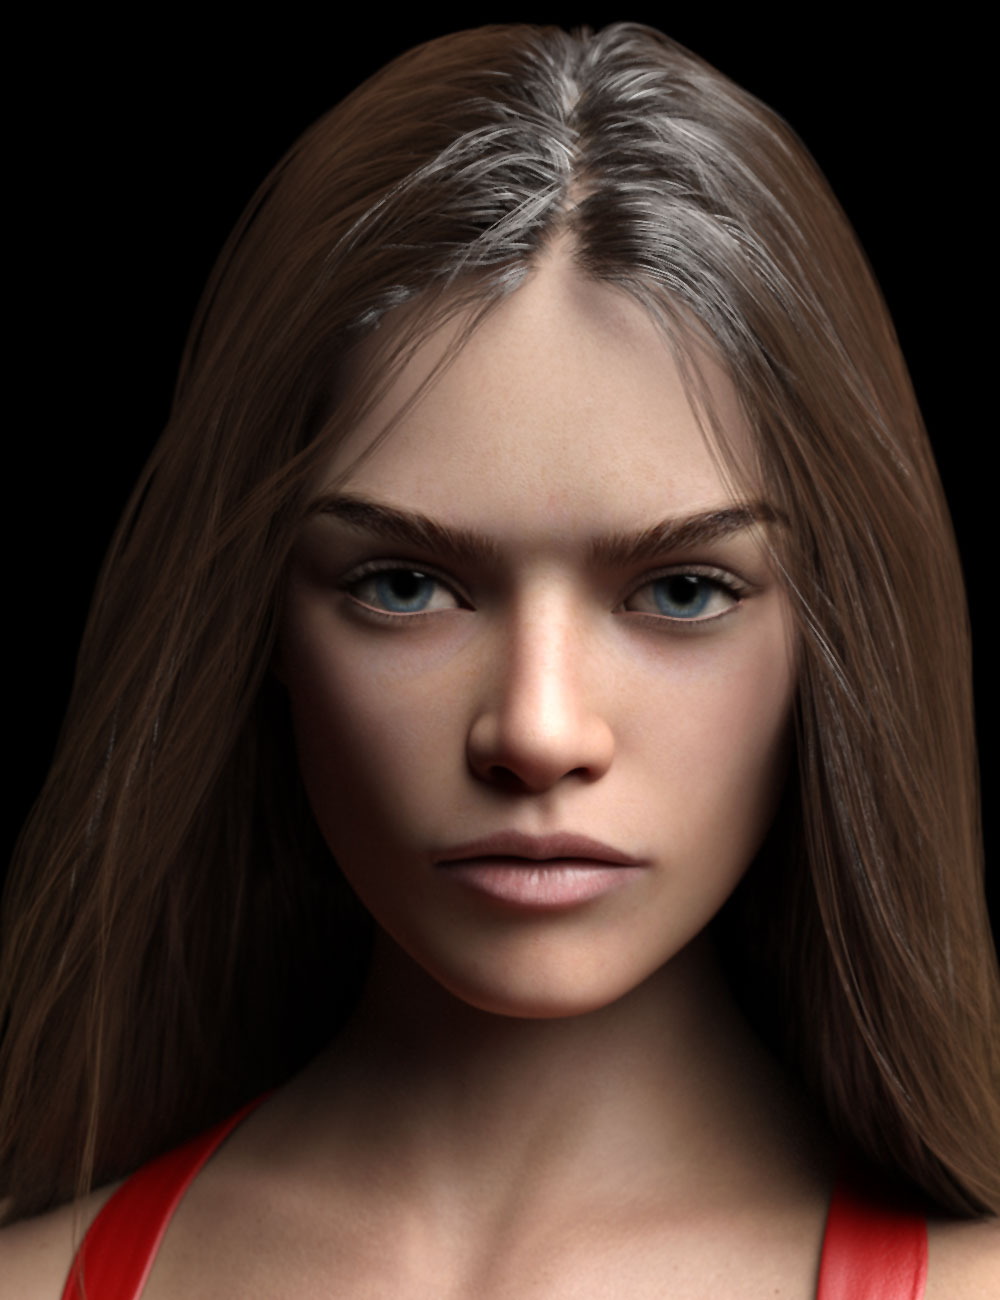 Madonna for Genesis 8 Female by: Mousso, 3D Models by Daz 3D